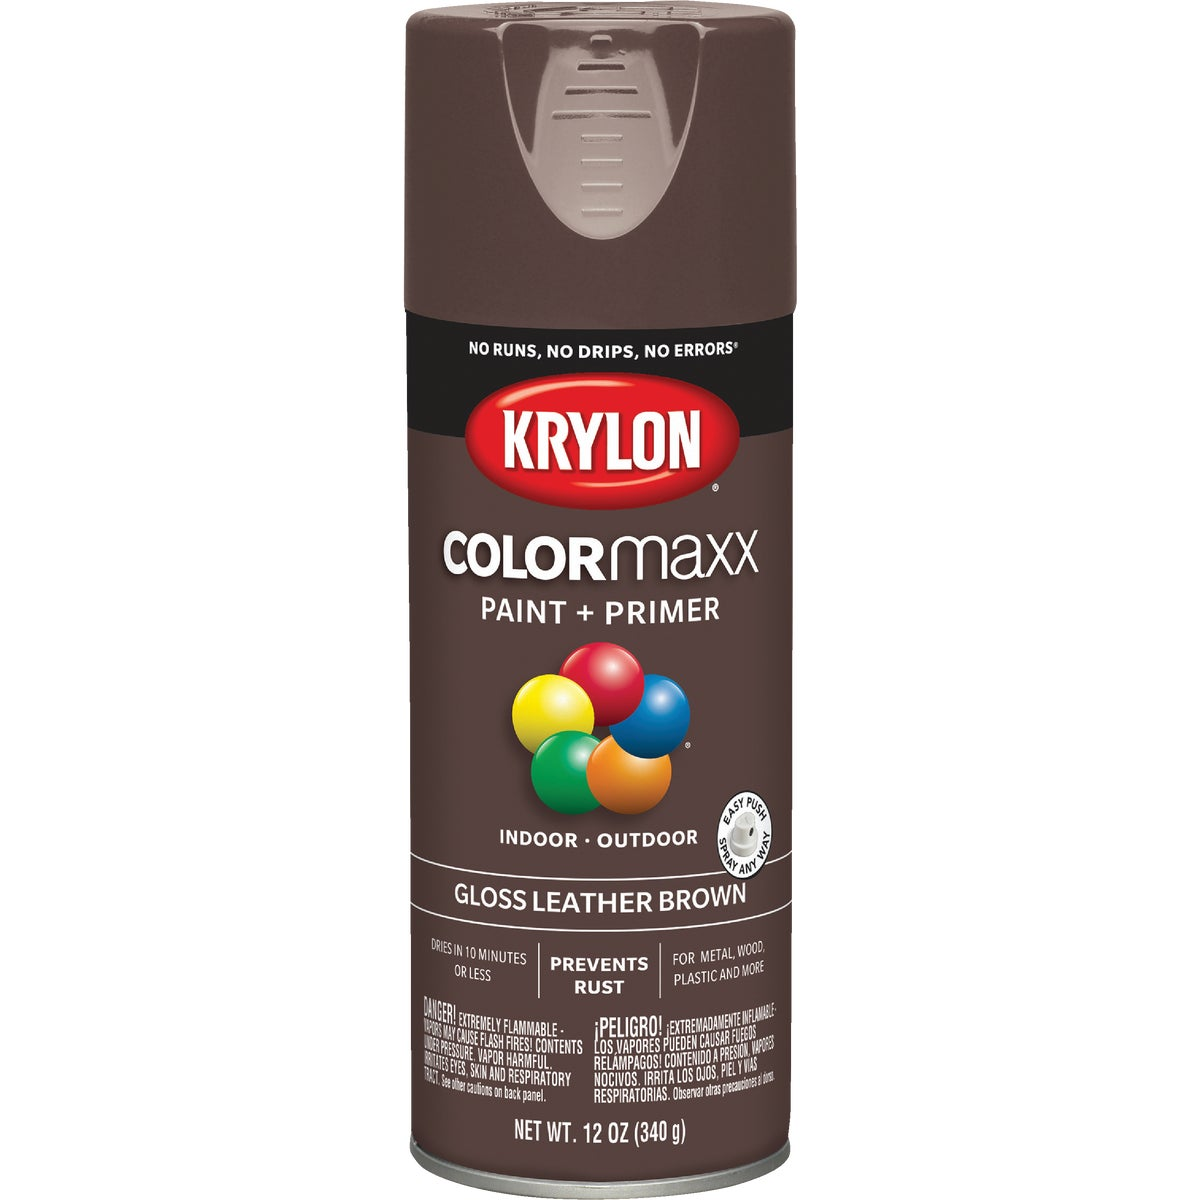 GLS L BROWN SPRAY PAINT - 52501 by Krylon/consumer Div